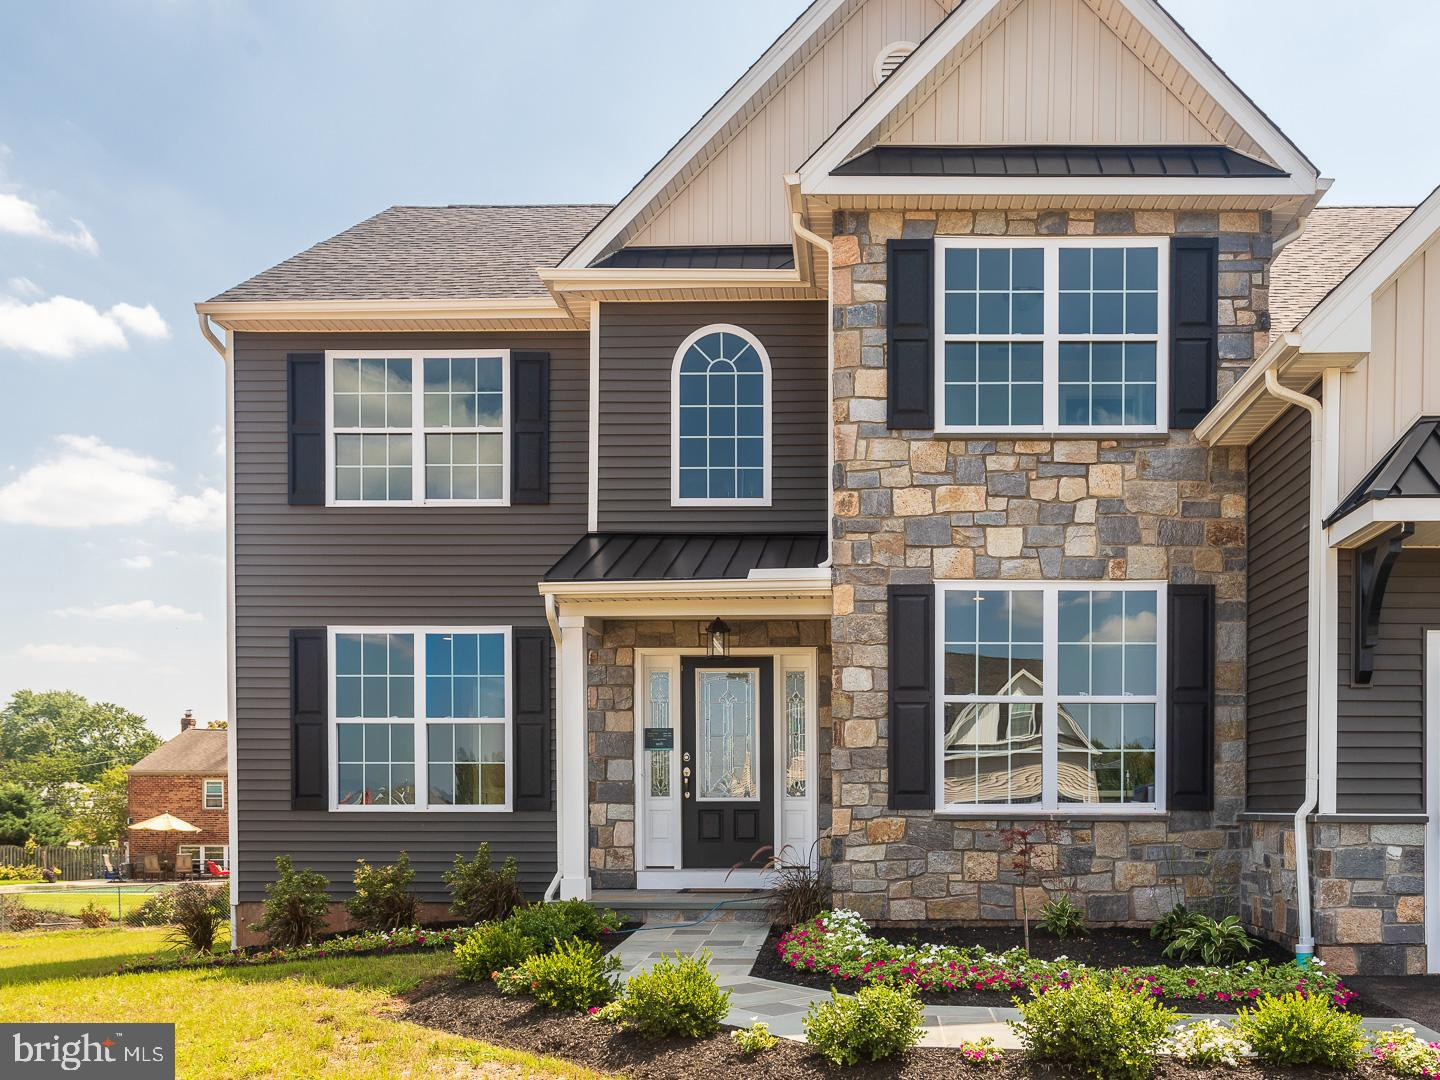 321 CALEY COURT, KING OF PRUSSIA, PA 19406